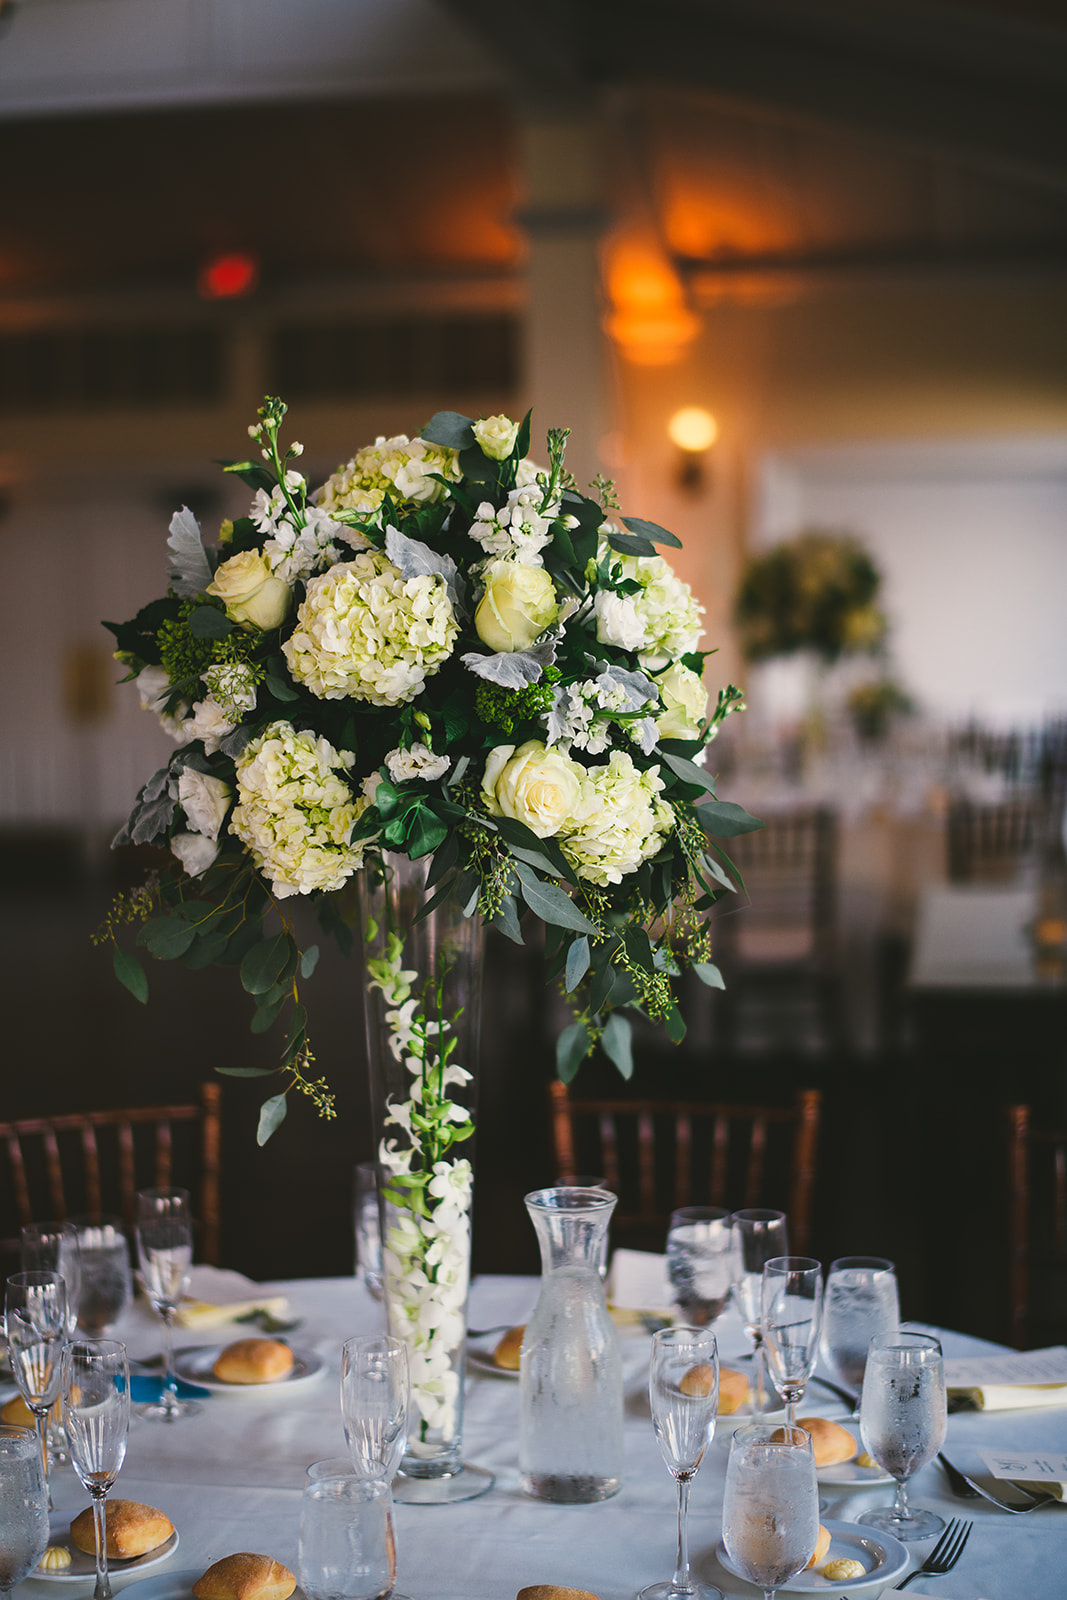 19 wedding table at whitby castle.jpg